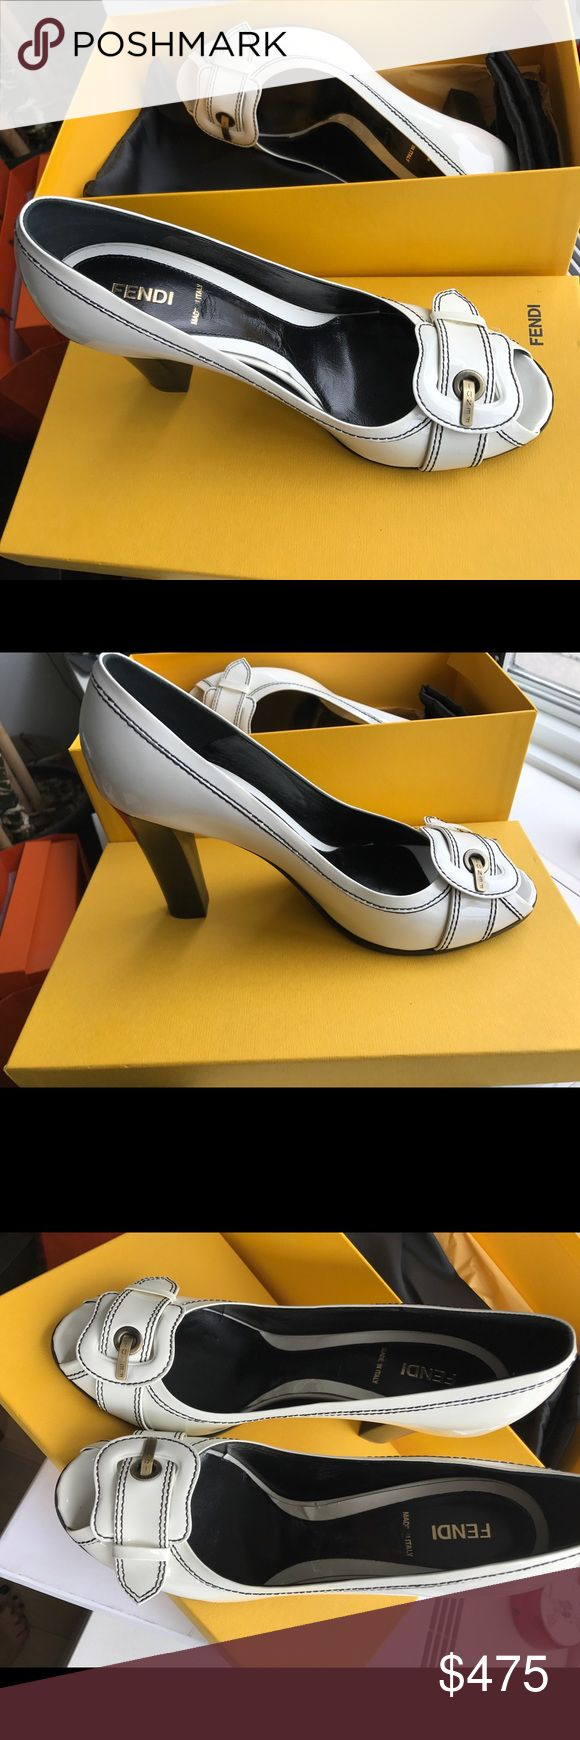 Fendi white patent leather pumps Gorgeous FENDI white patent leather pumps - perfect with your spring outfit. Worn once. Fendi Shoes Heels